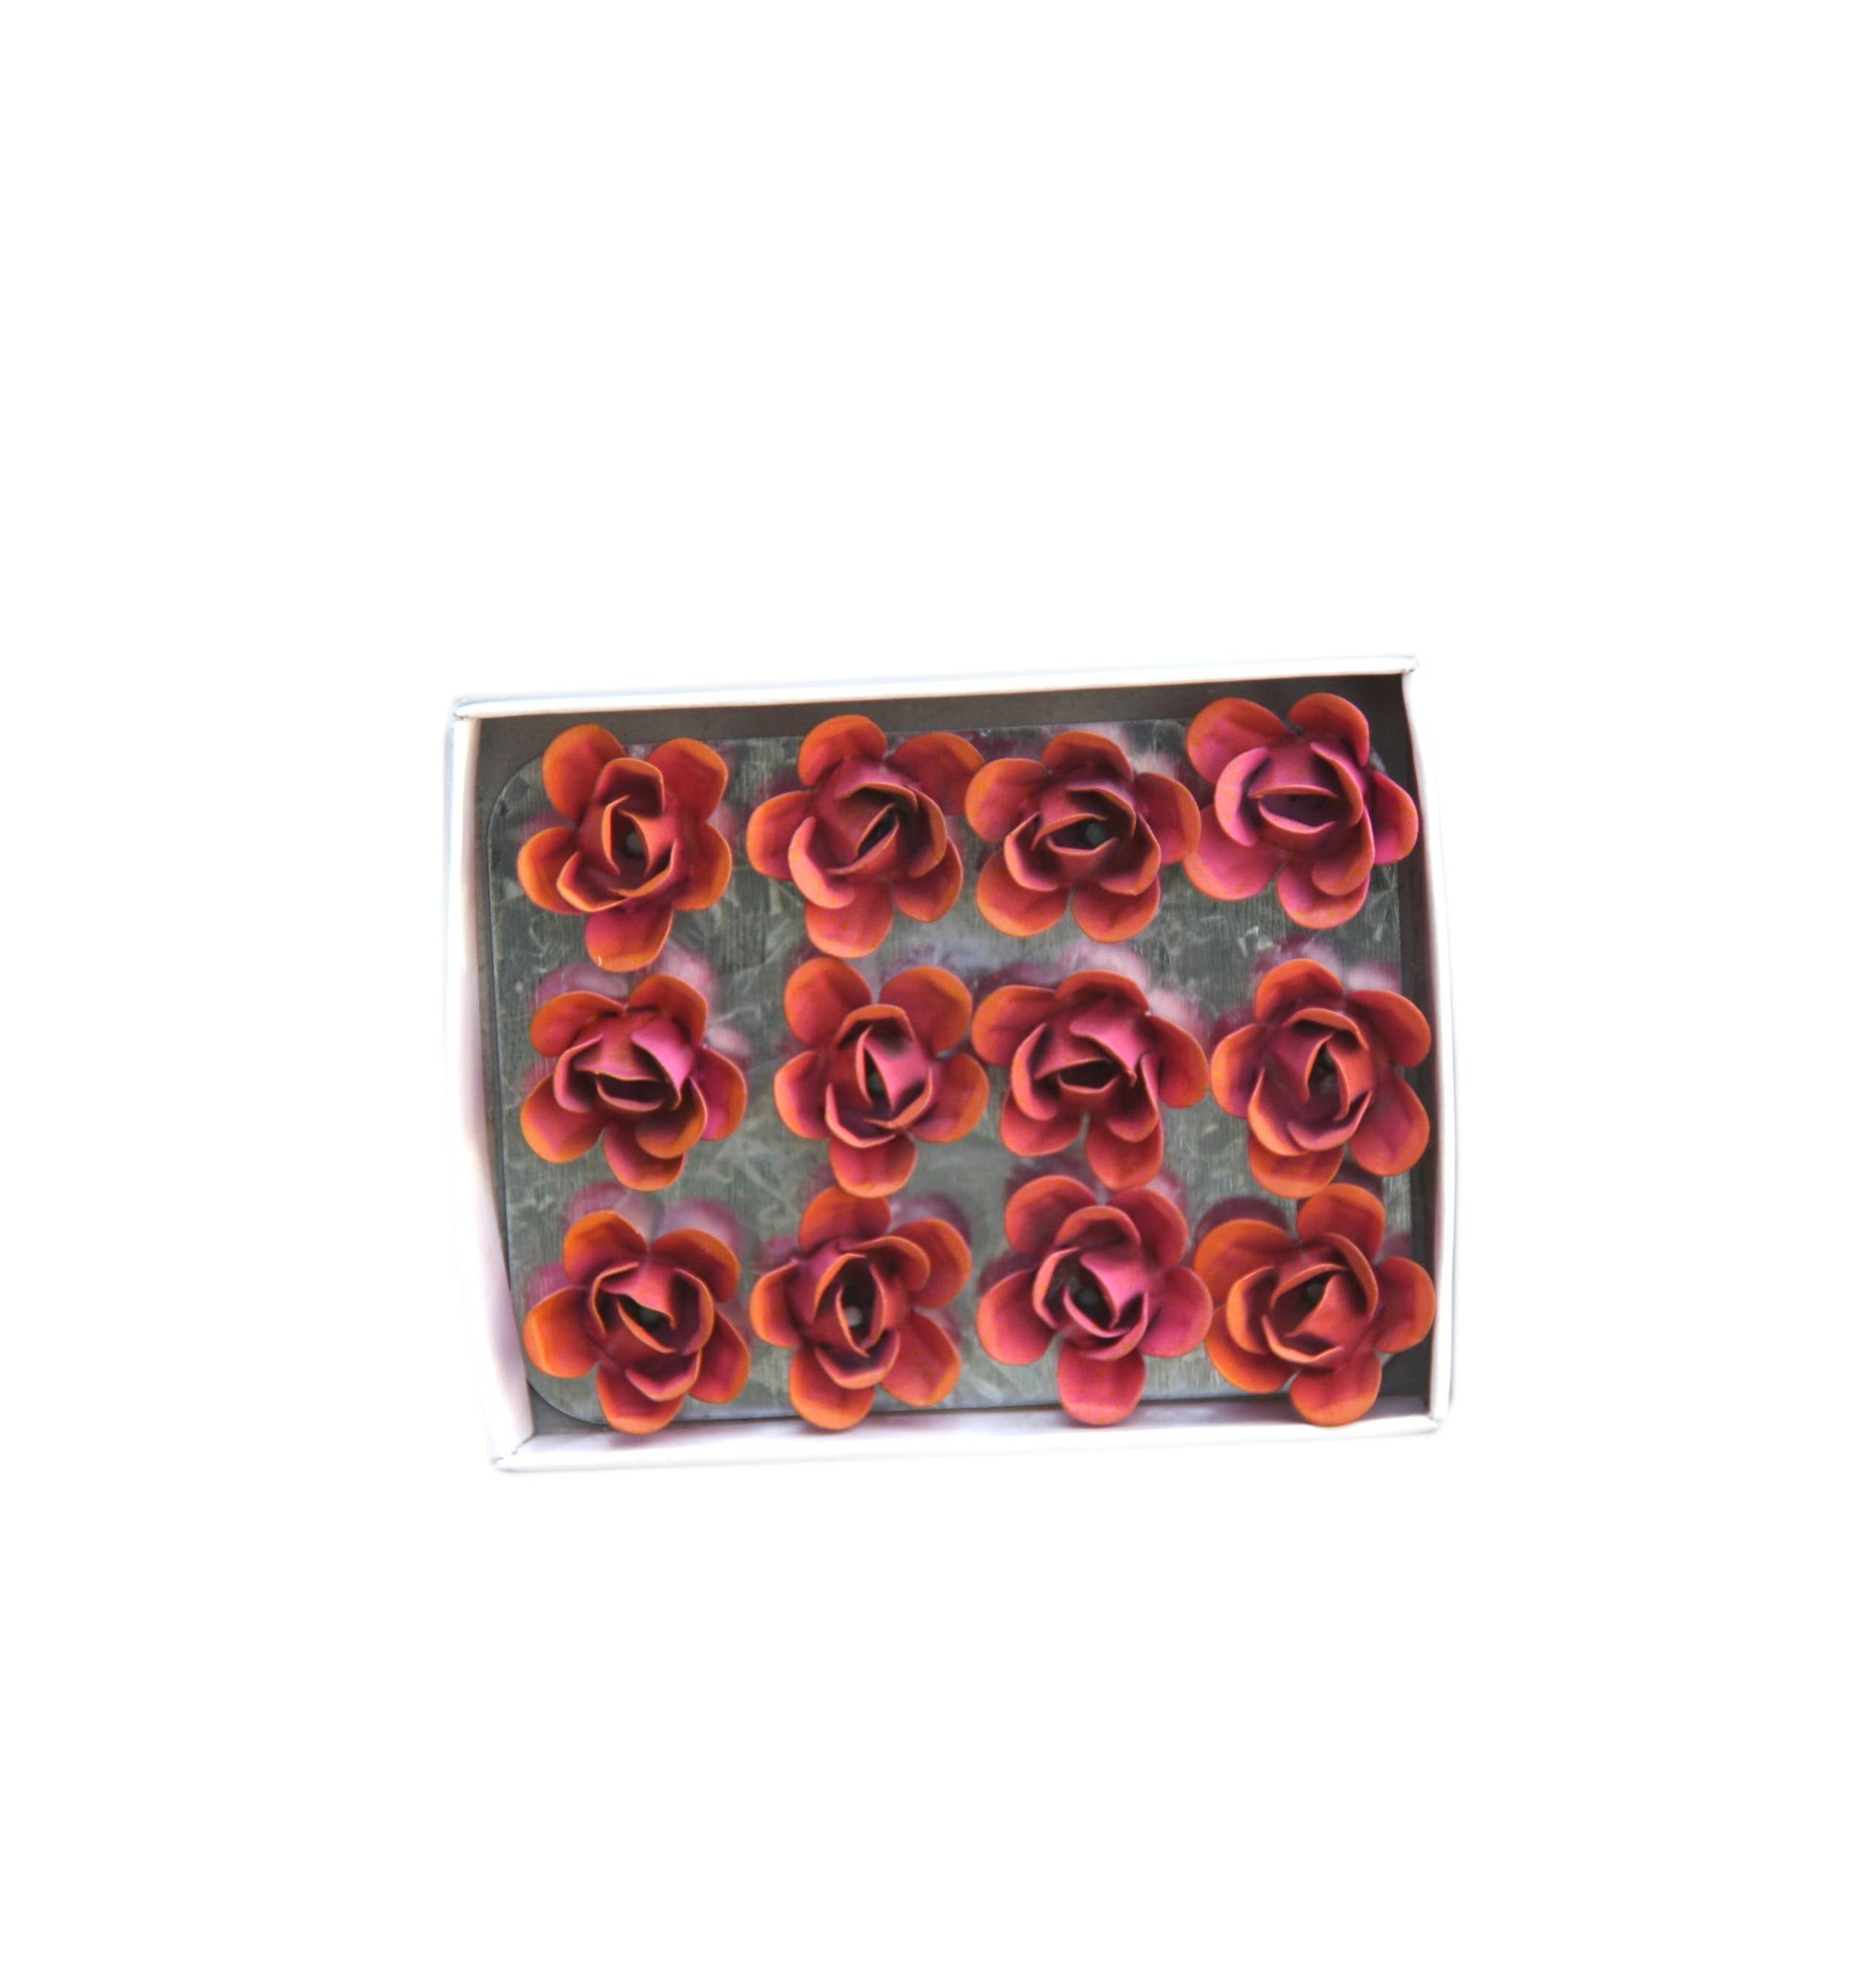 Mini Rosebud Magnet- 1 count